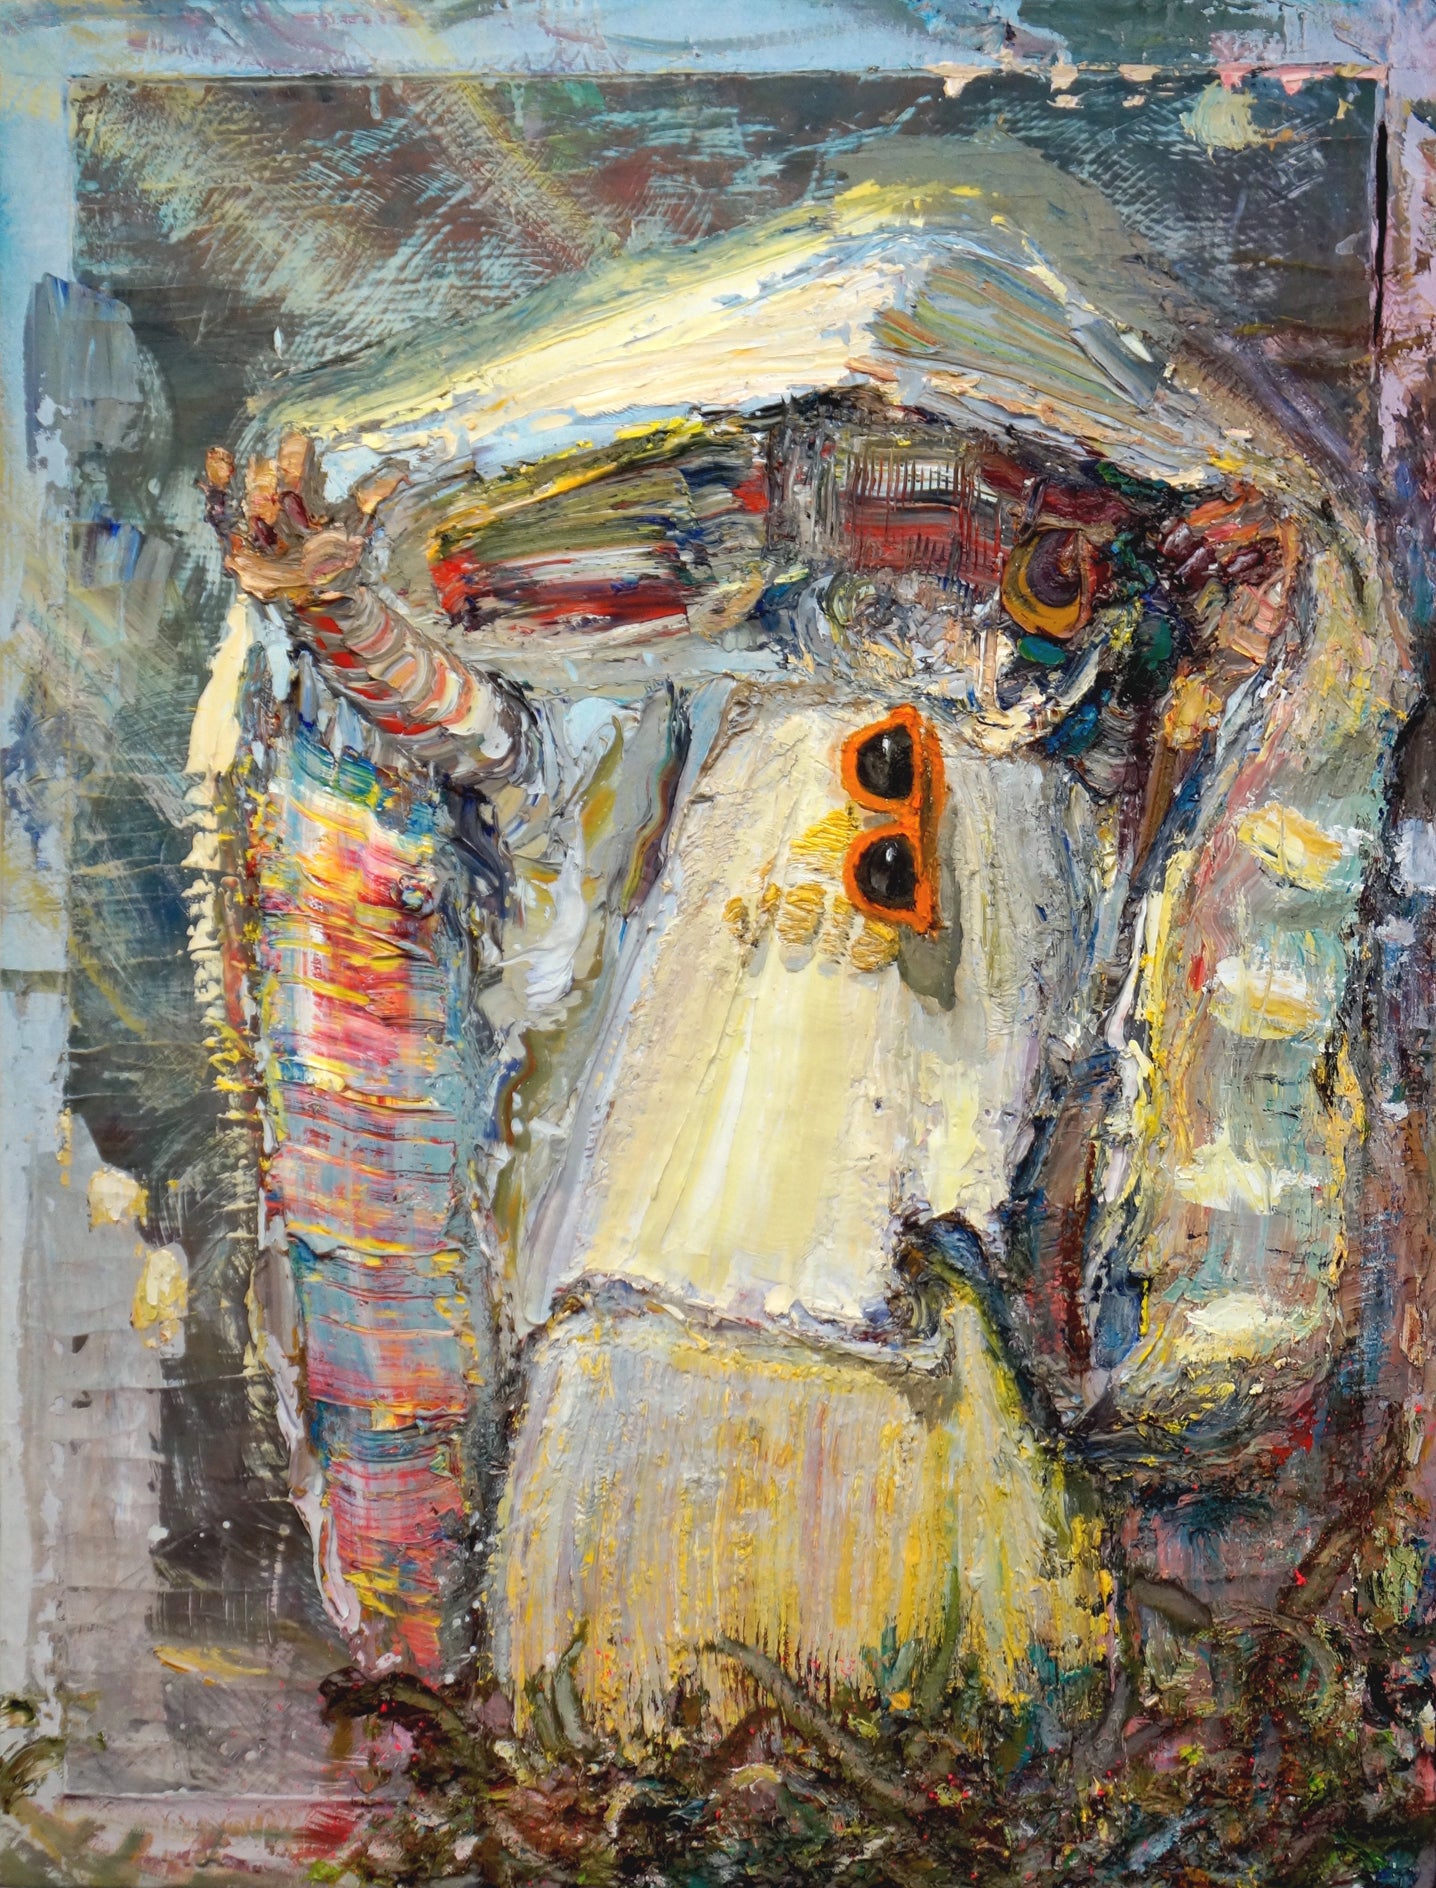 Sunglasses and a Veil (after Sargent)  - Abstract Figurative Painting, textured